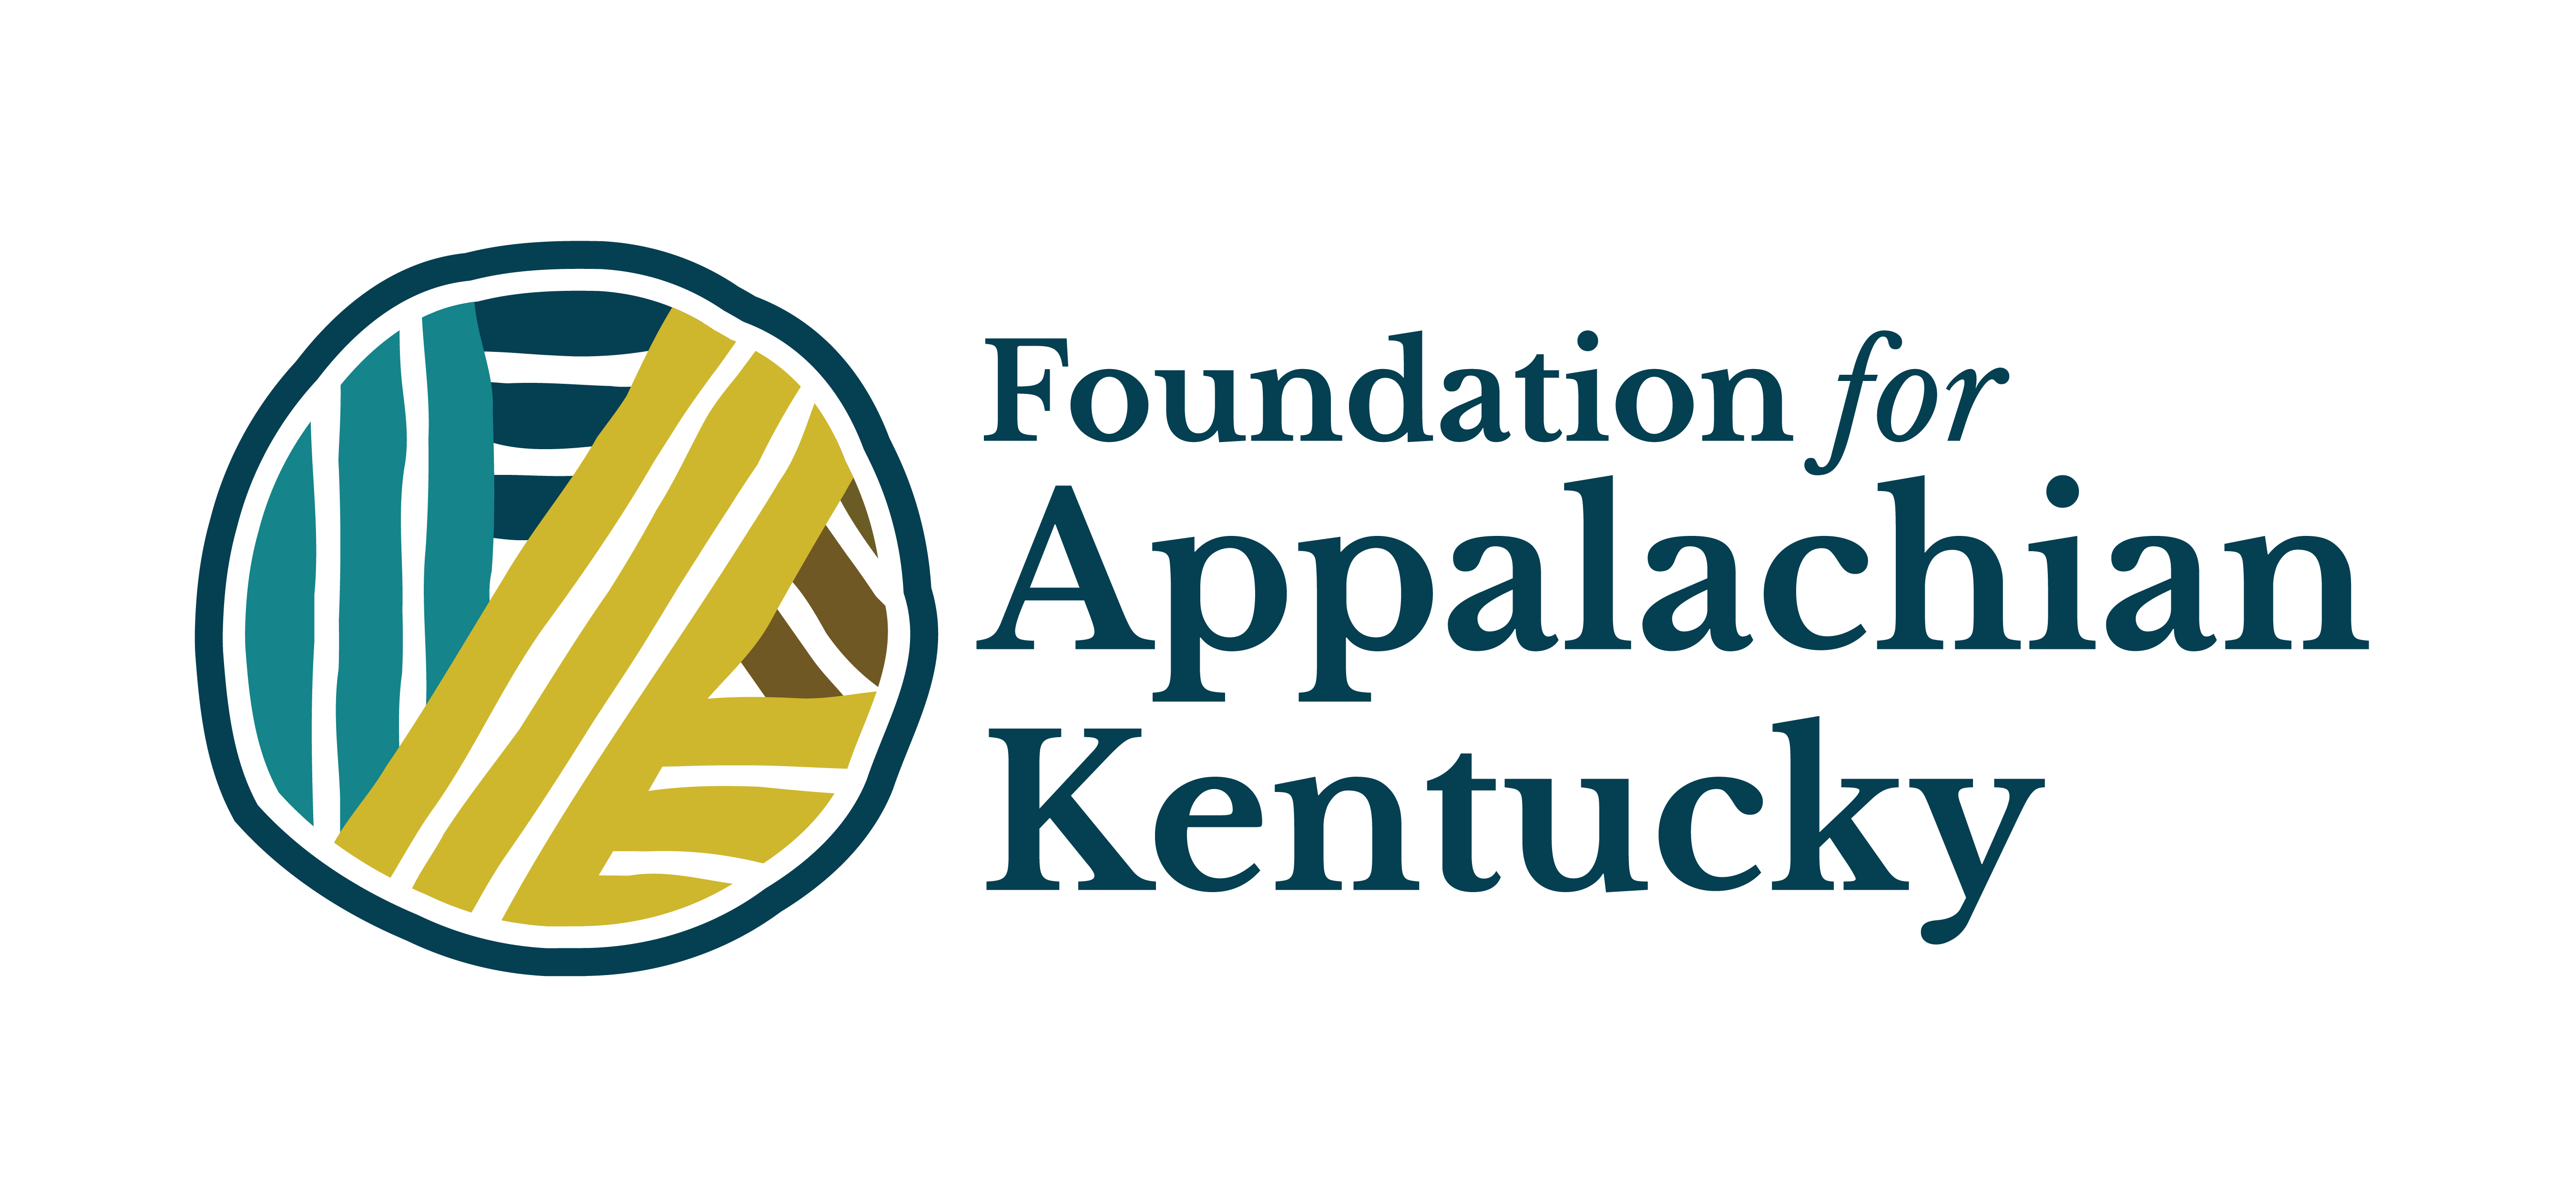 Foundation for Appalachian Kentucky logo